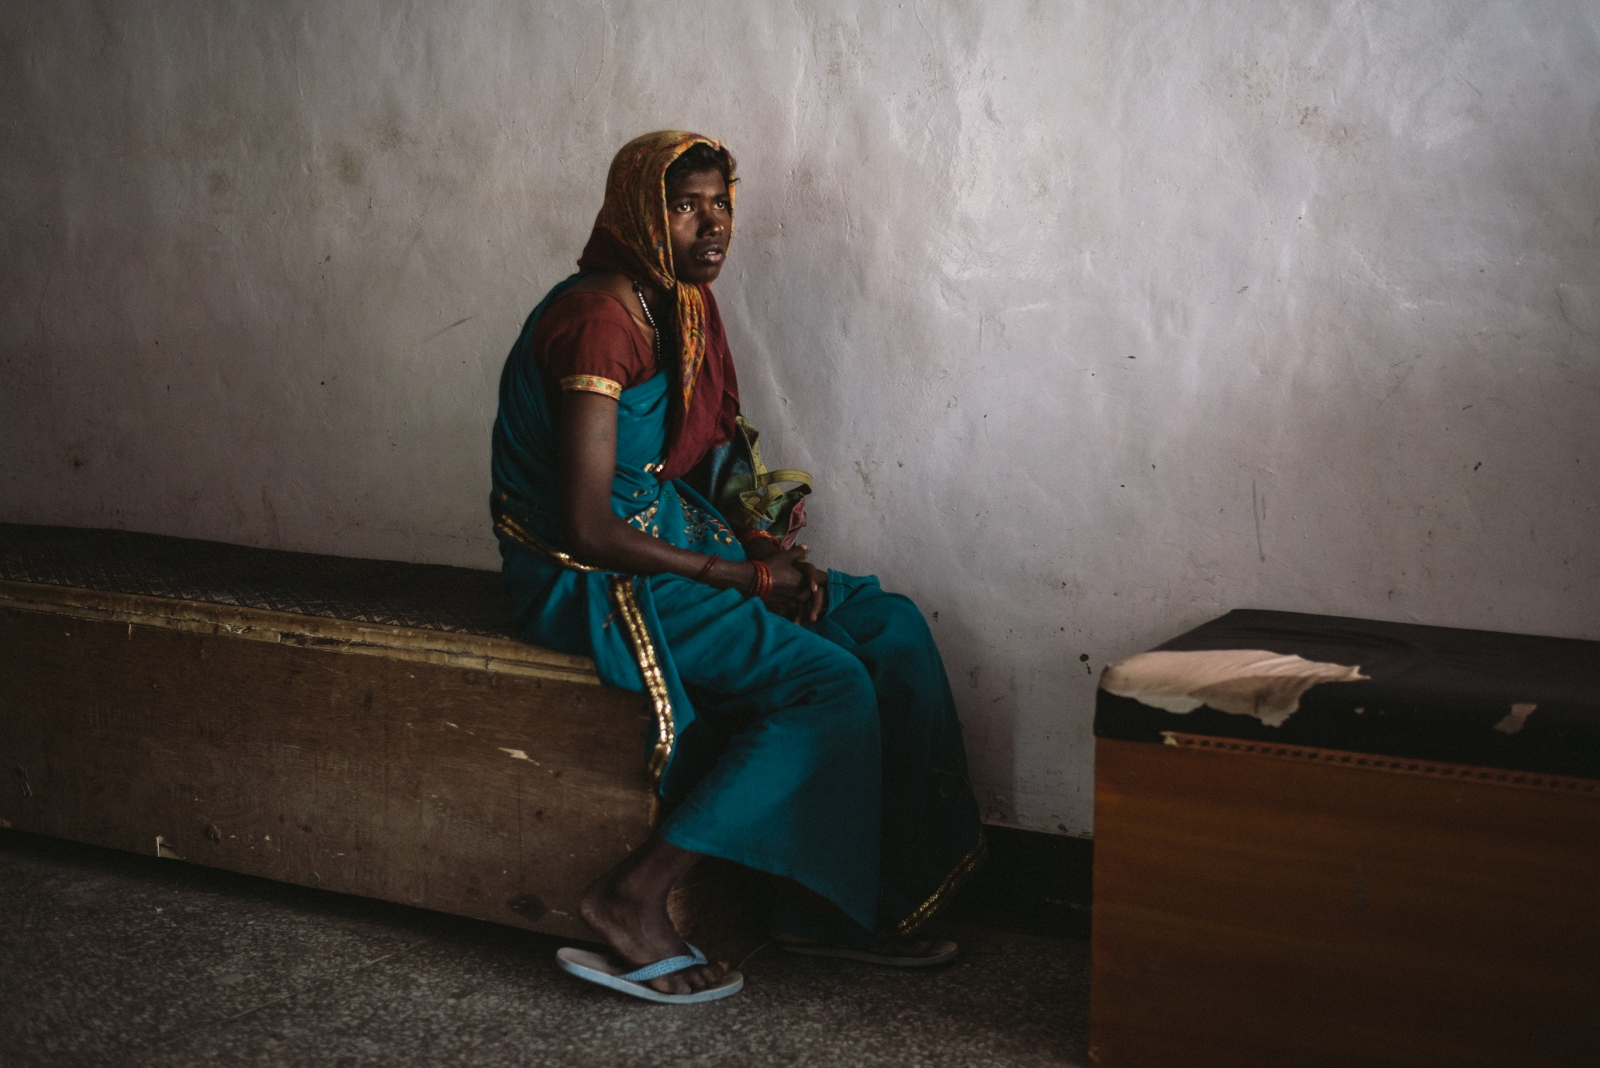 An immigrant Bihari woman awaits outside the maternity ward at the overcrowded and understaffed Sonam Norboo Memorial Hospital in Leh. The lack of doctors, medical equipment and resources makes healthcare a serious issue in the region, especially in times of disaster.